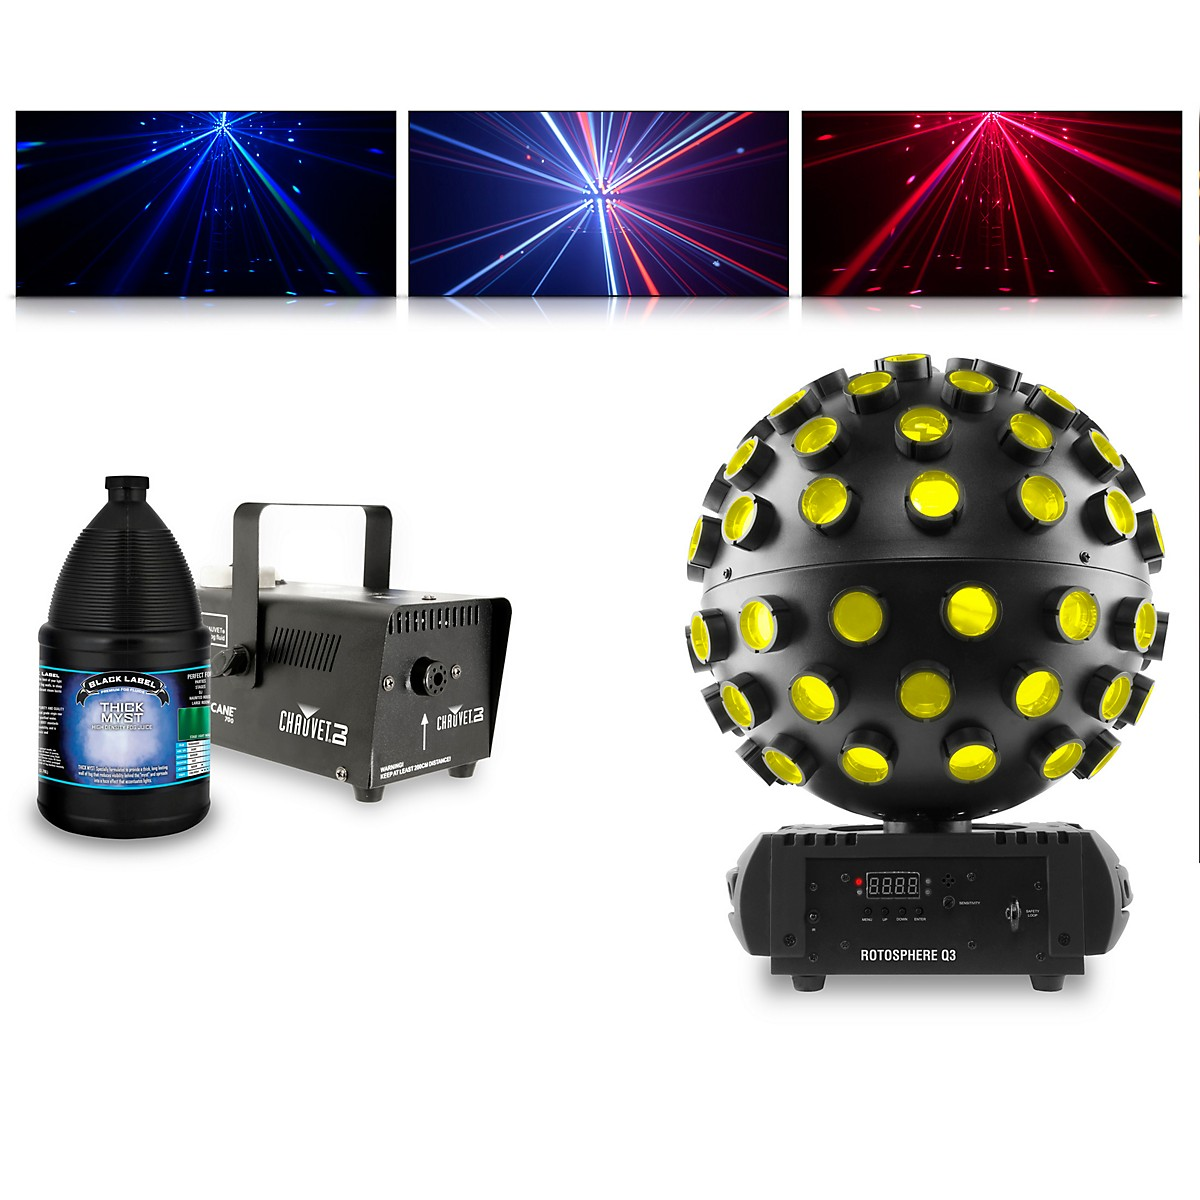 CHAUVET DJ Rotosphere Q3 with Hurricane 700 Fog Machine and Juice